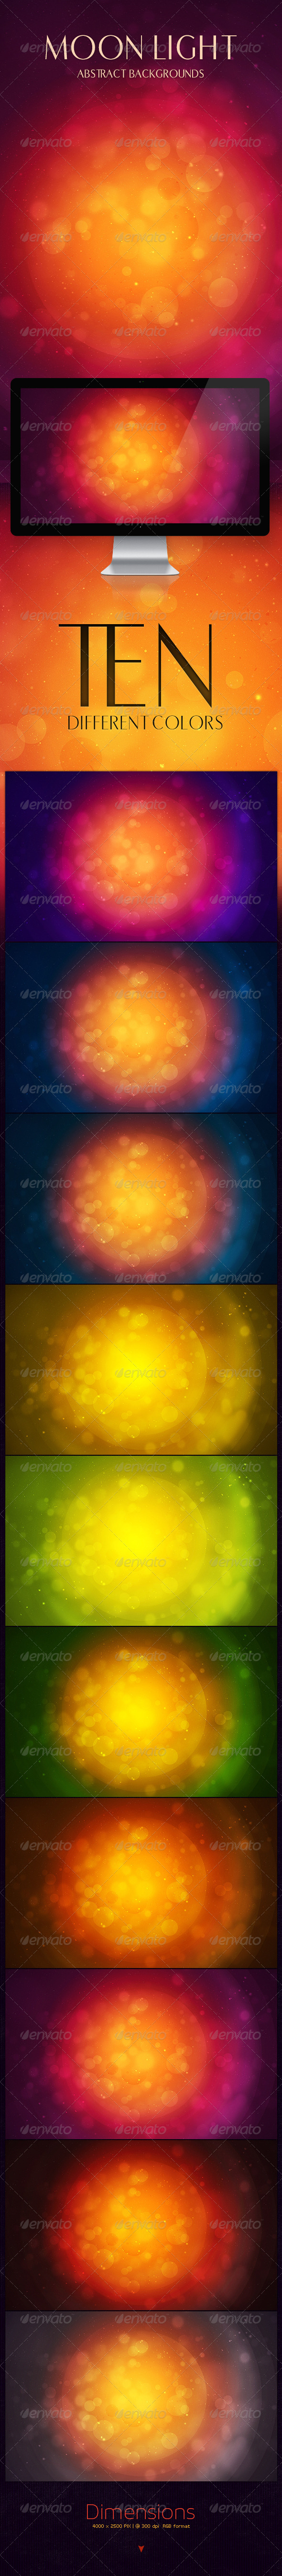 GraphicRiver Moon Light Abstract Backgrounds 5697915